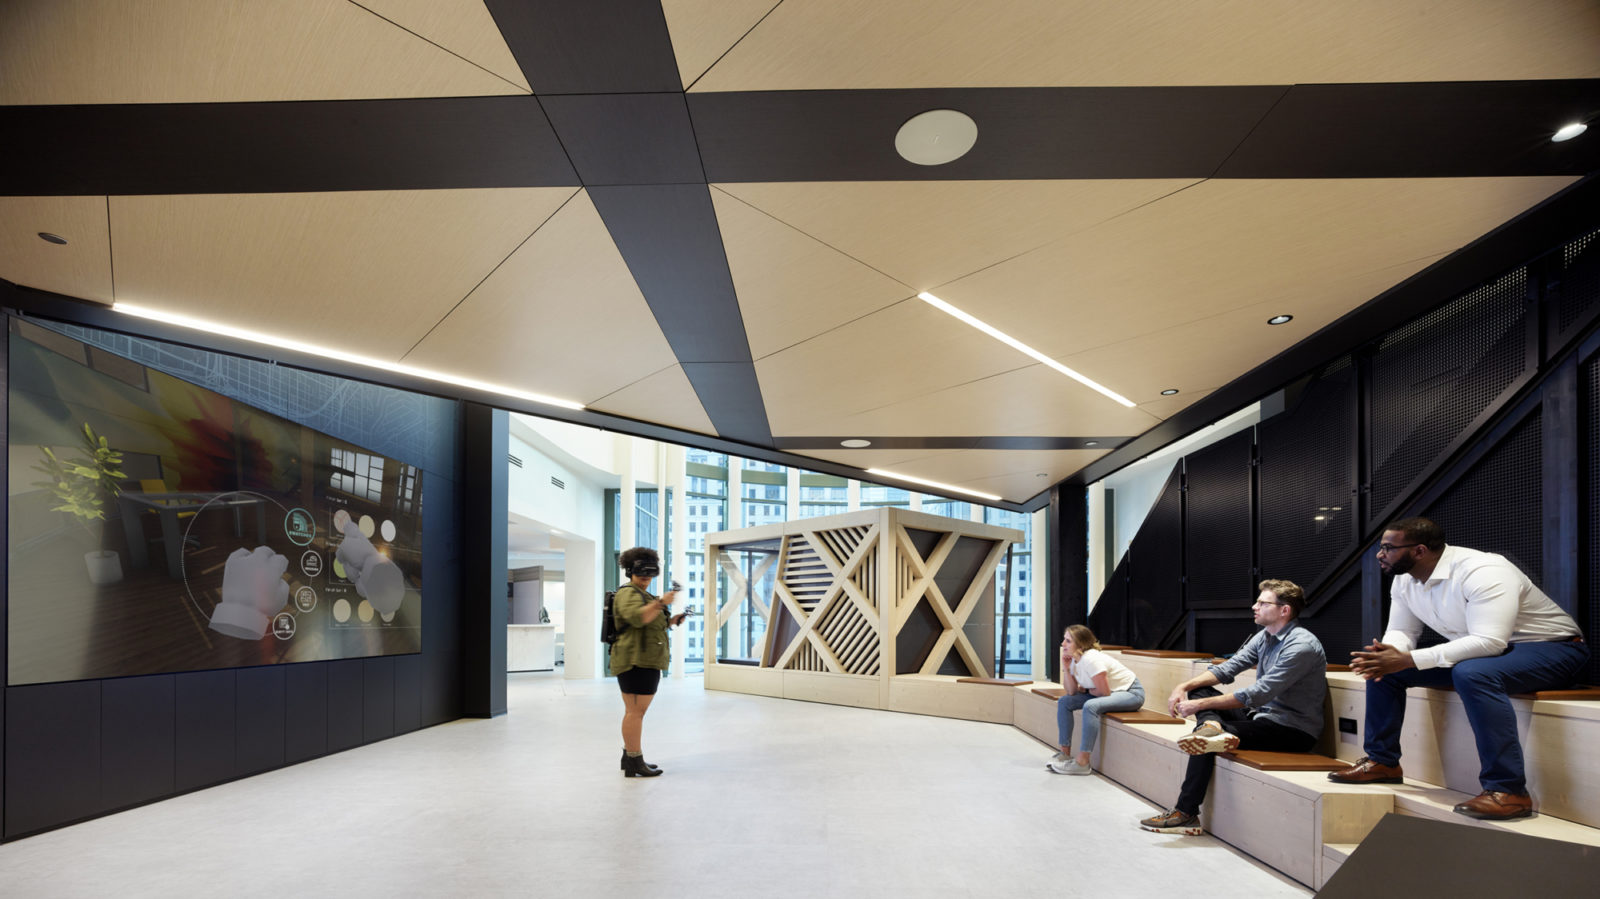 Chicago DXC VR room by Office Environments